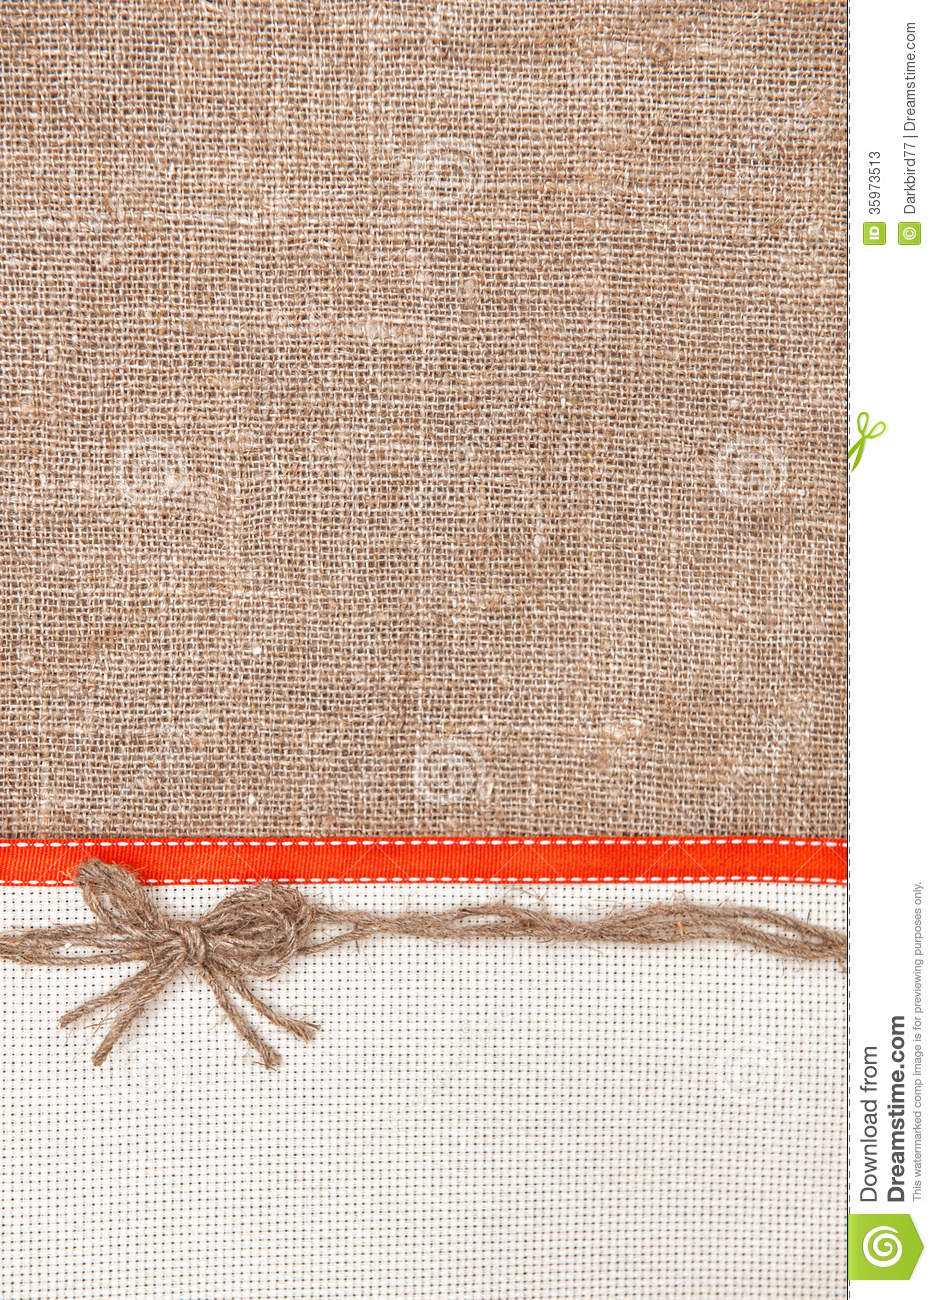 Valentine Card With Ribbon And Burlap Bow Stock Photos   Image